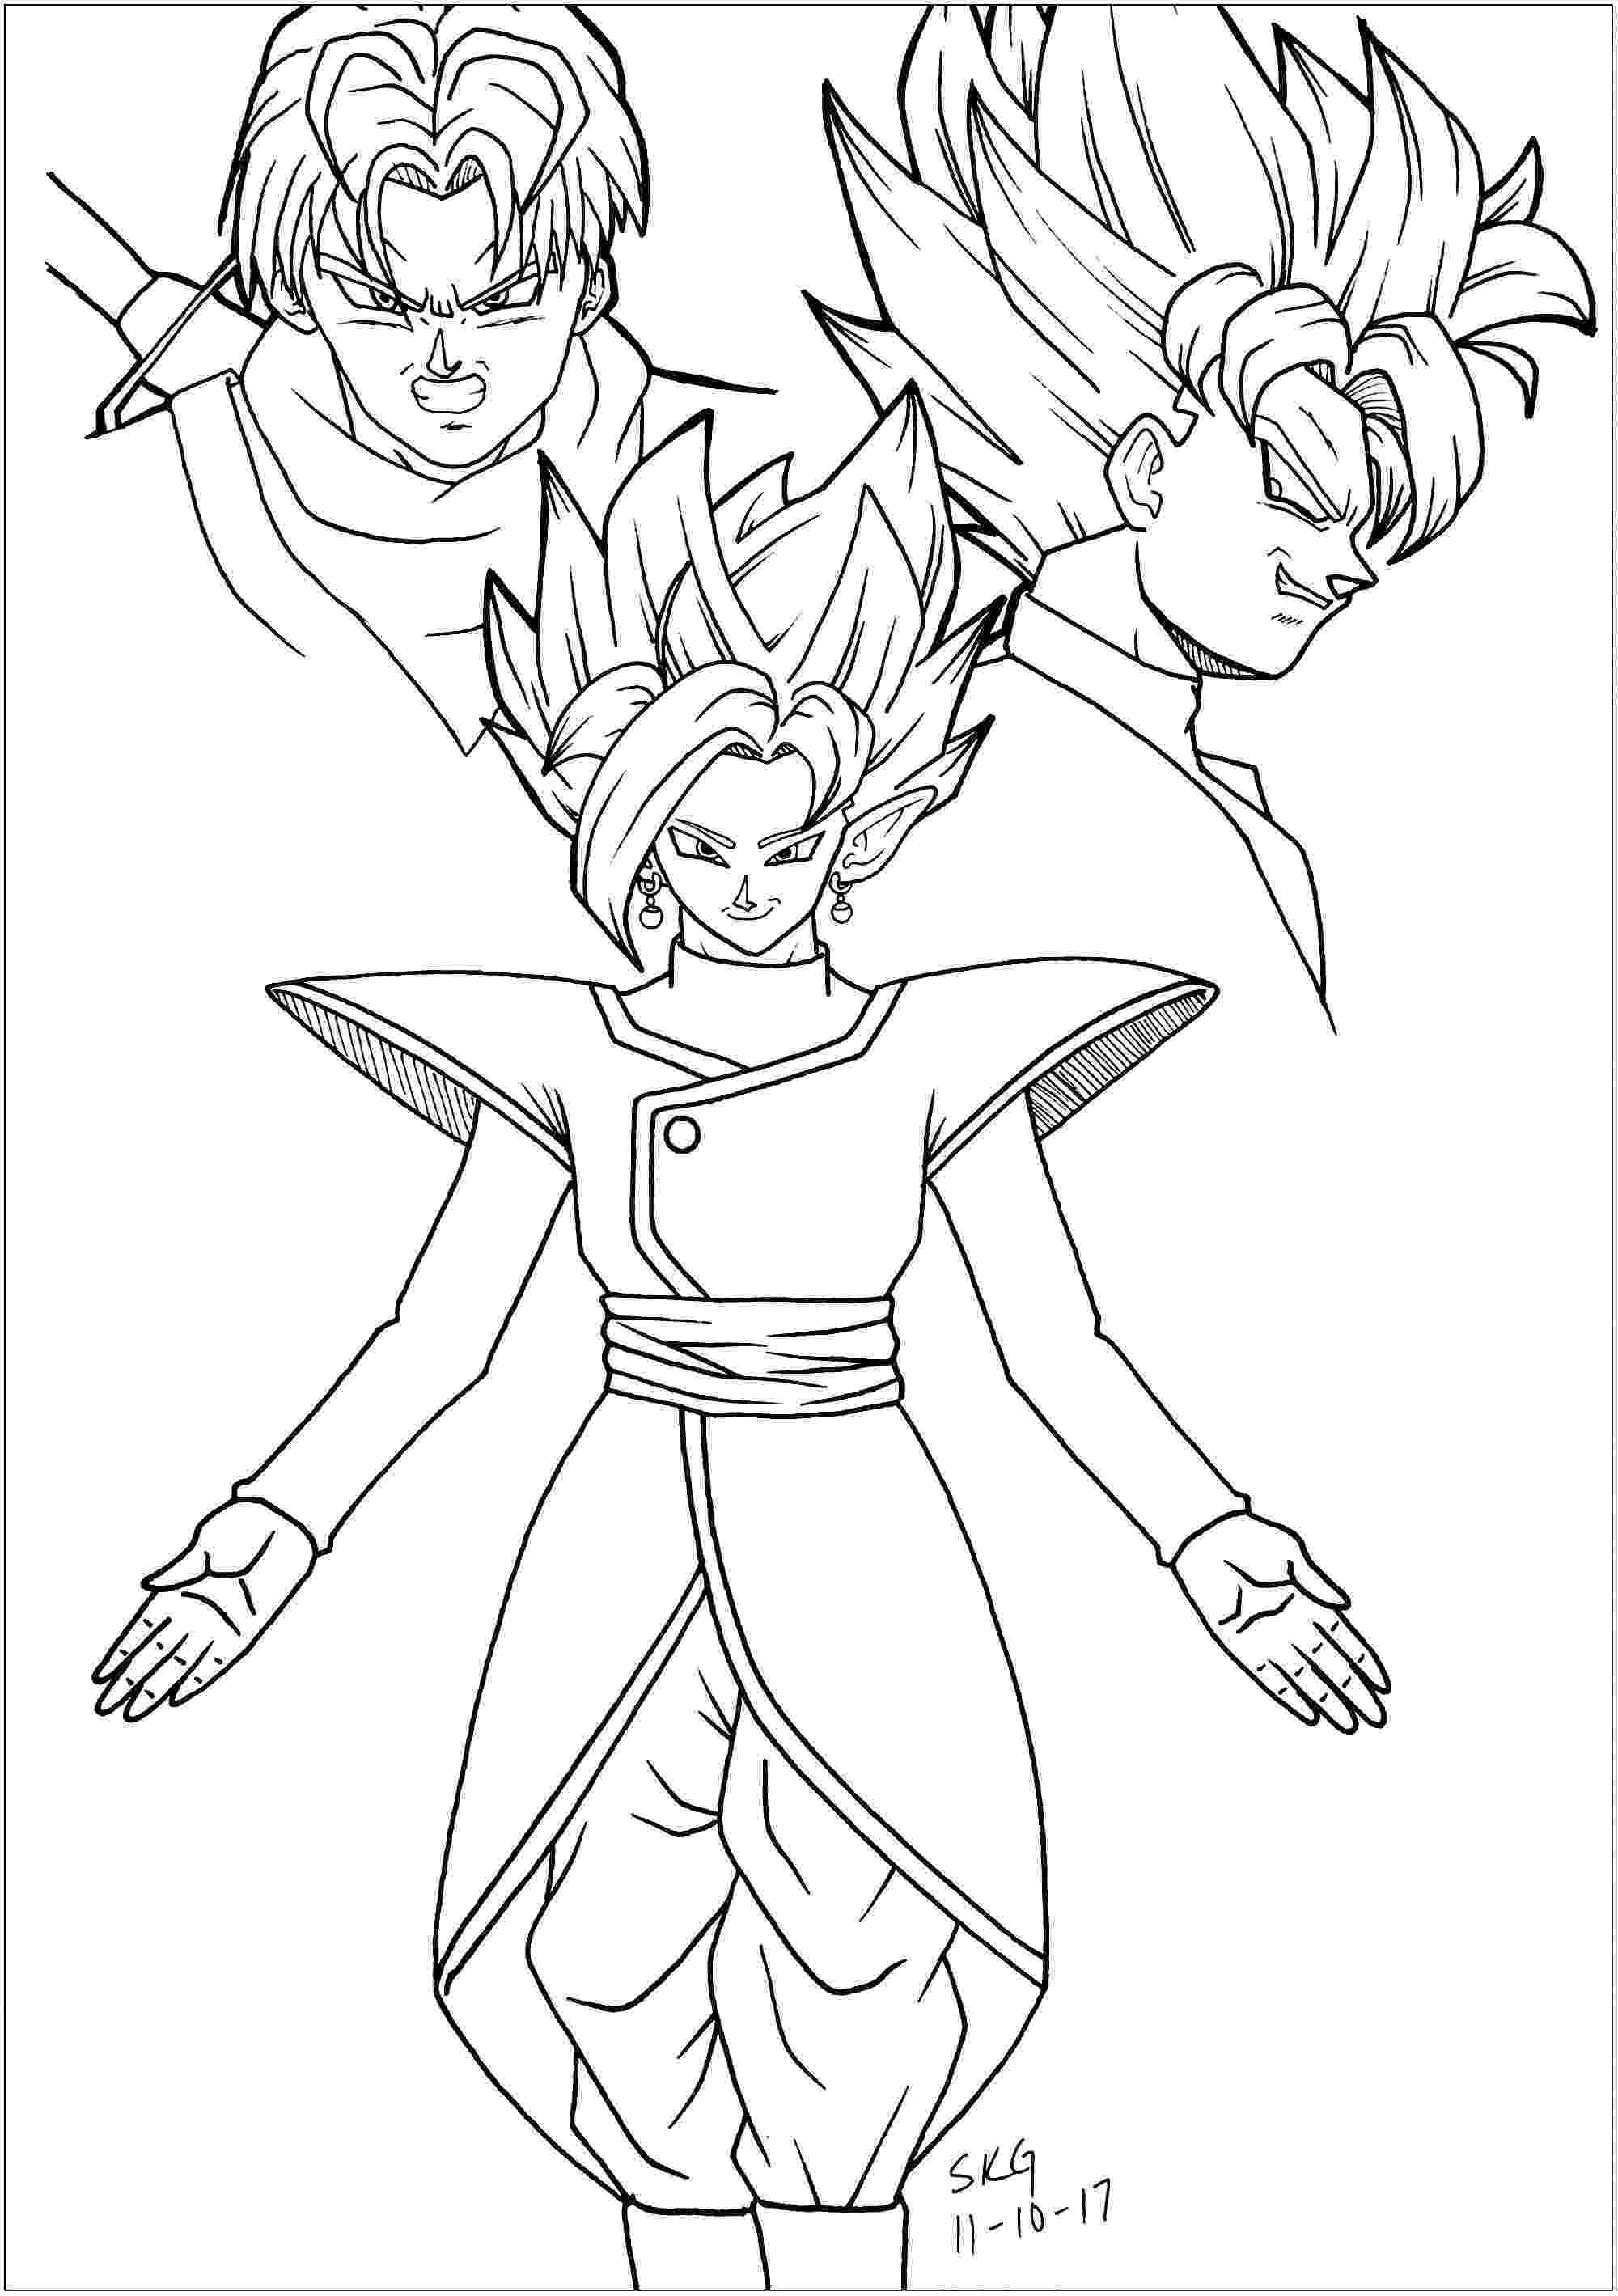 goku printable coloring pages wp images coloring pages post 3 pages coloring goku printable